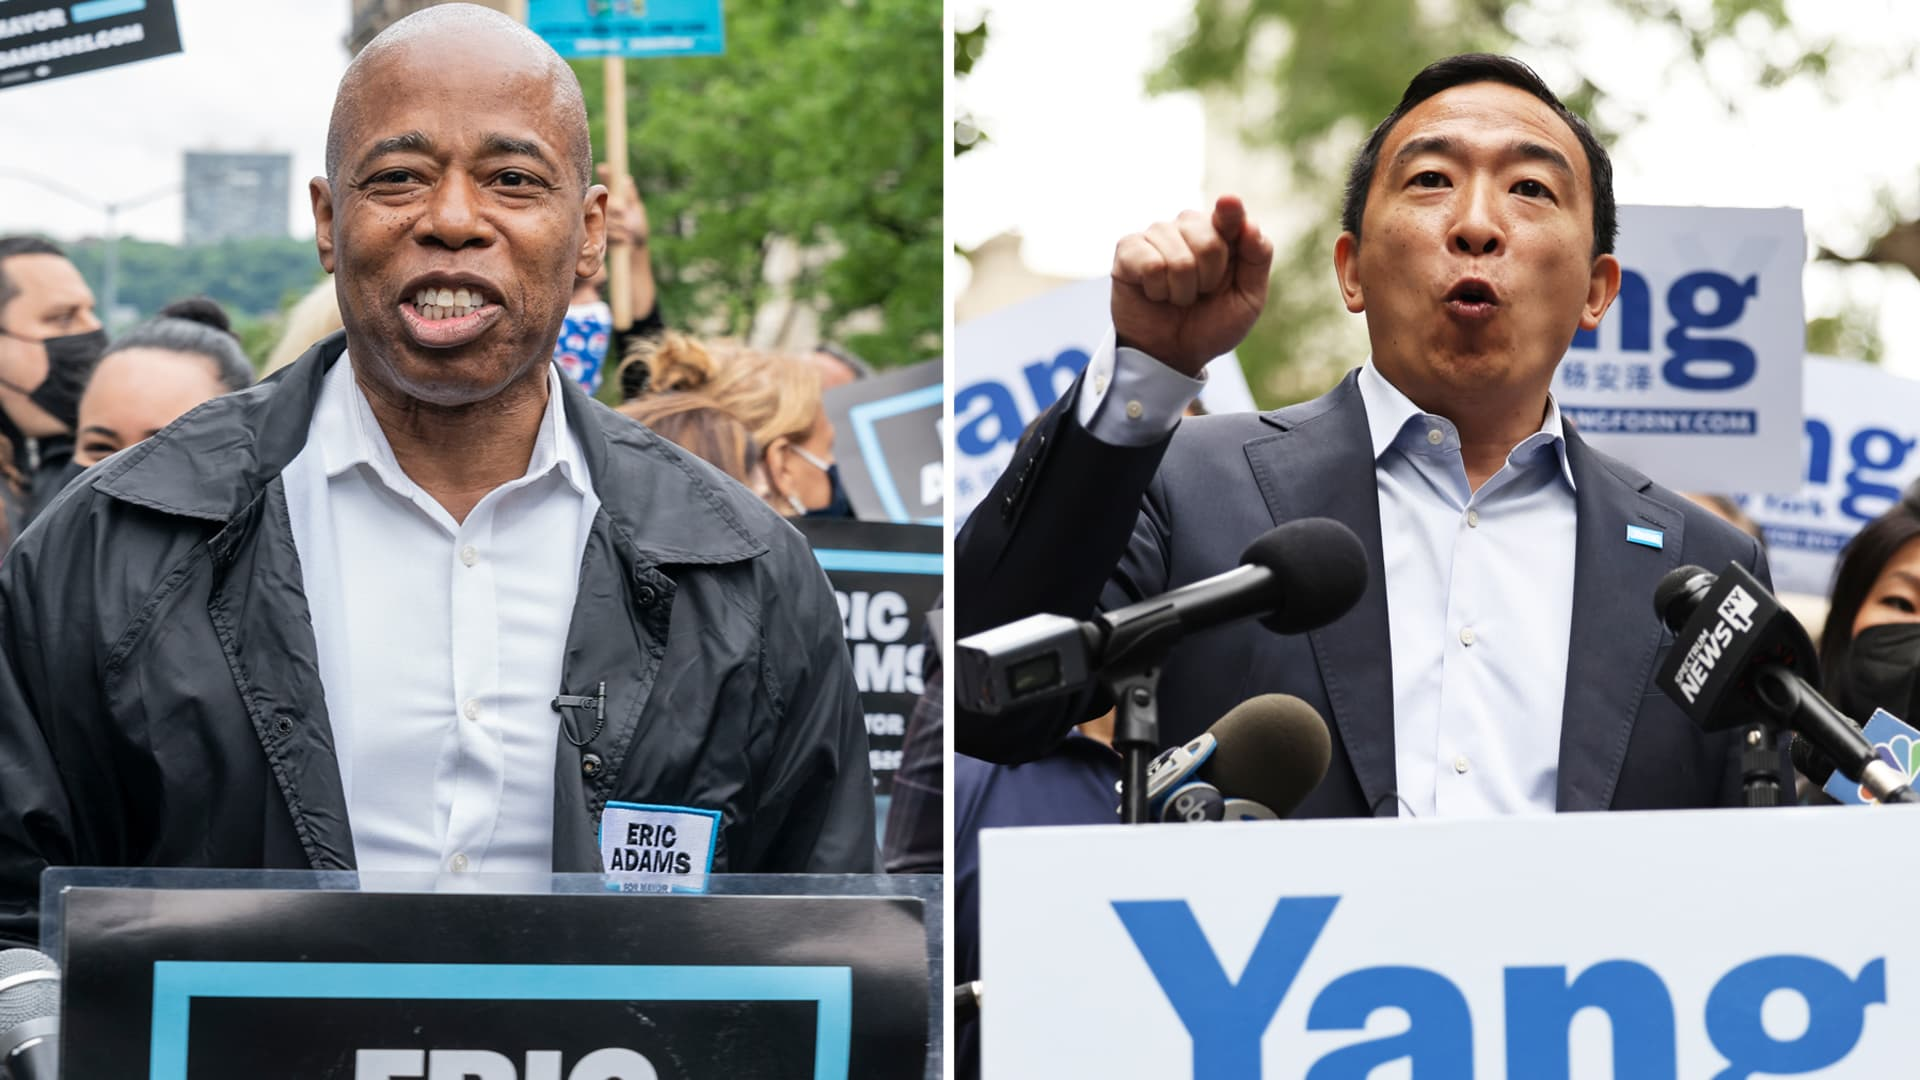 Mayoral candidates Eric Adams (L) and Andrew Yang